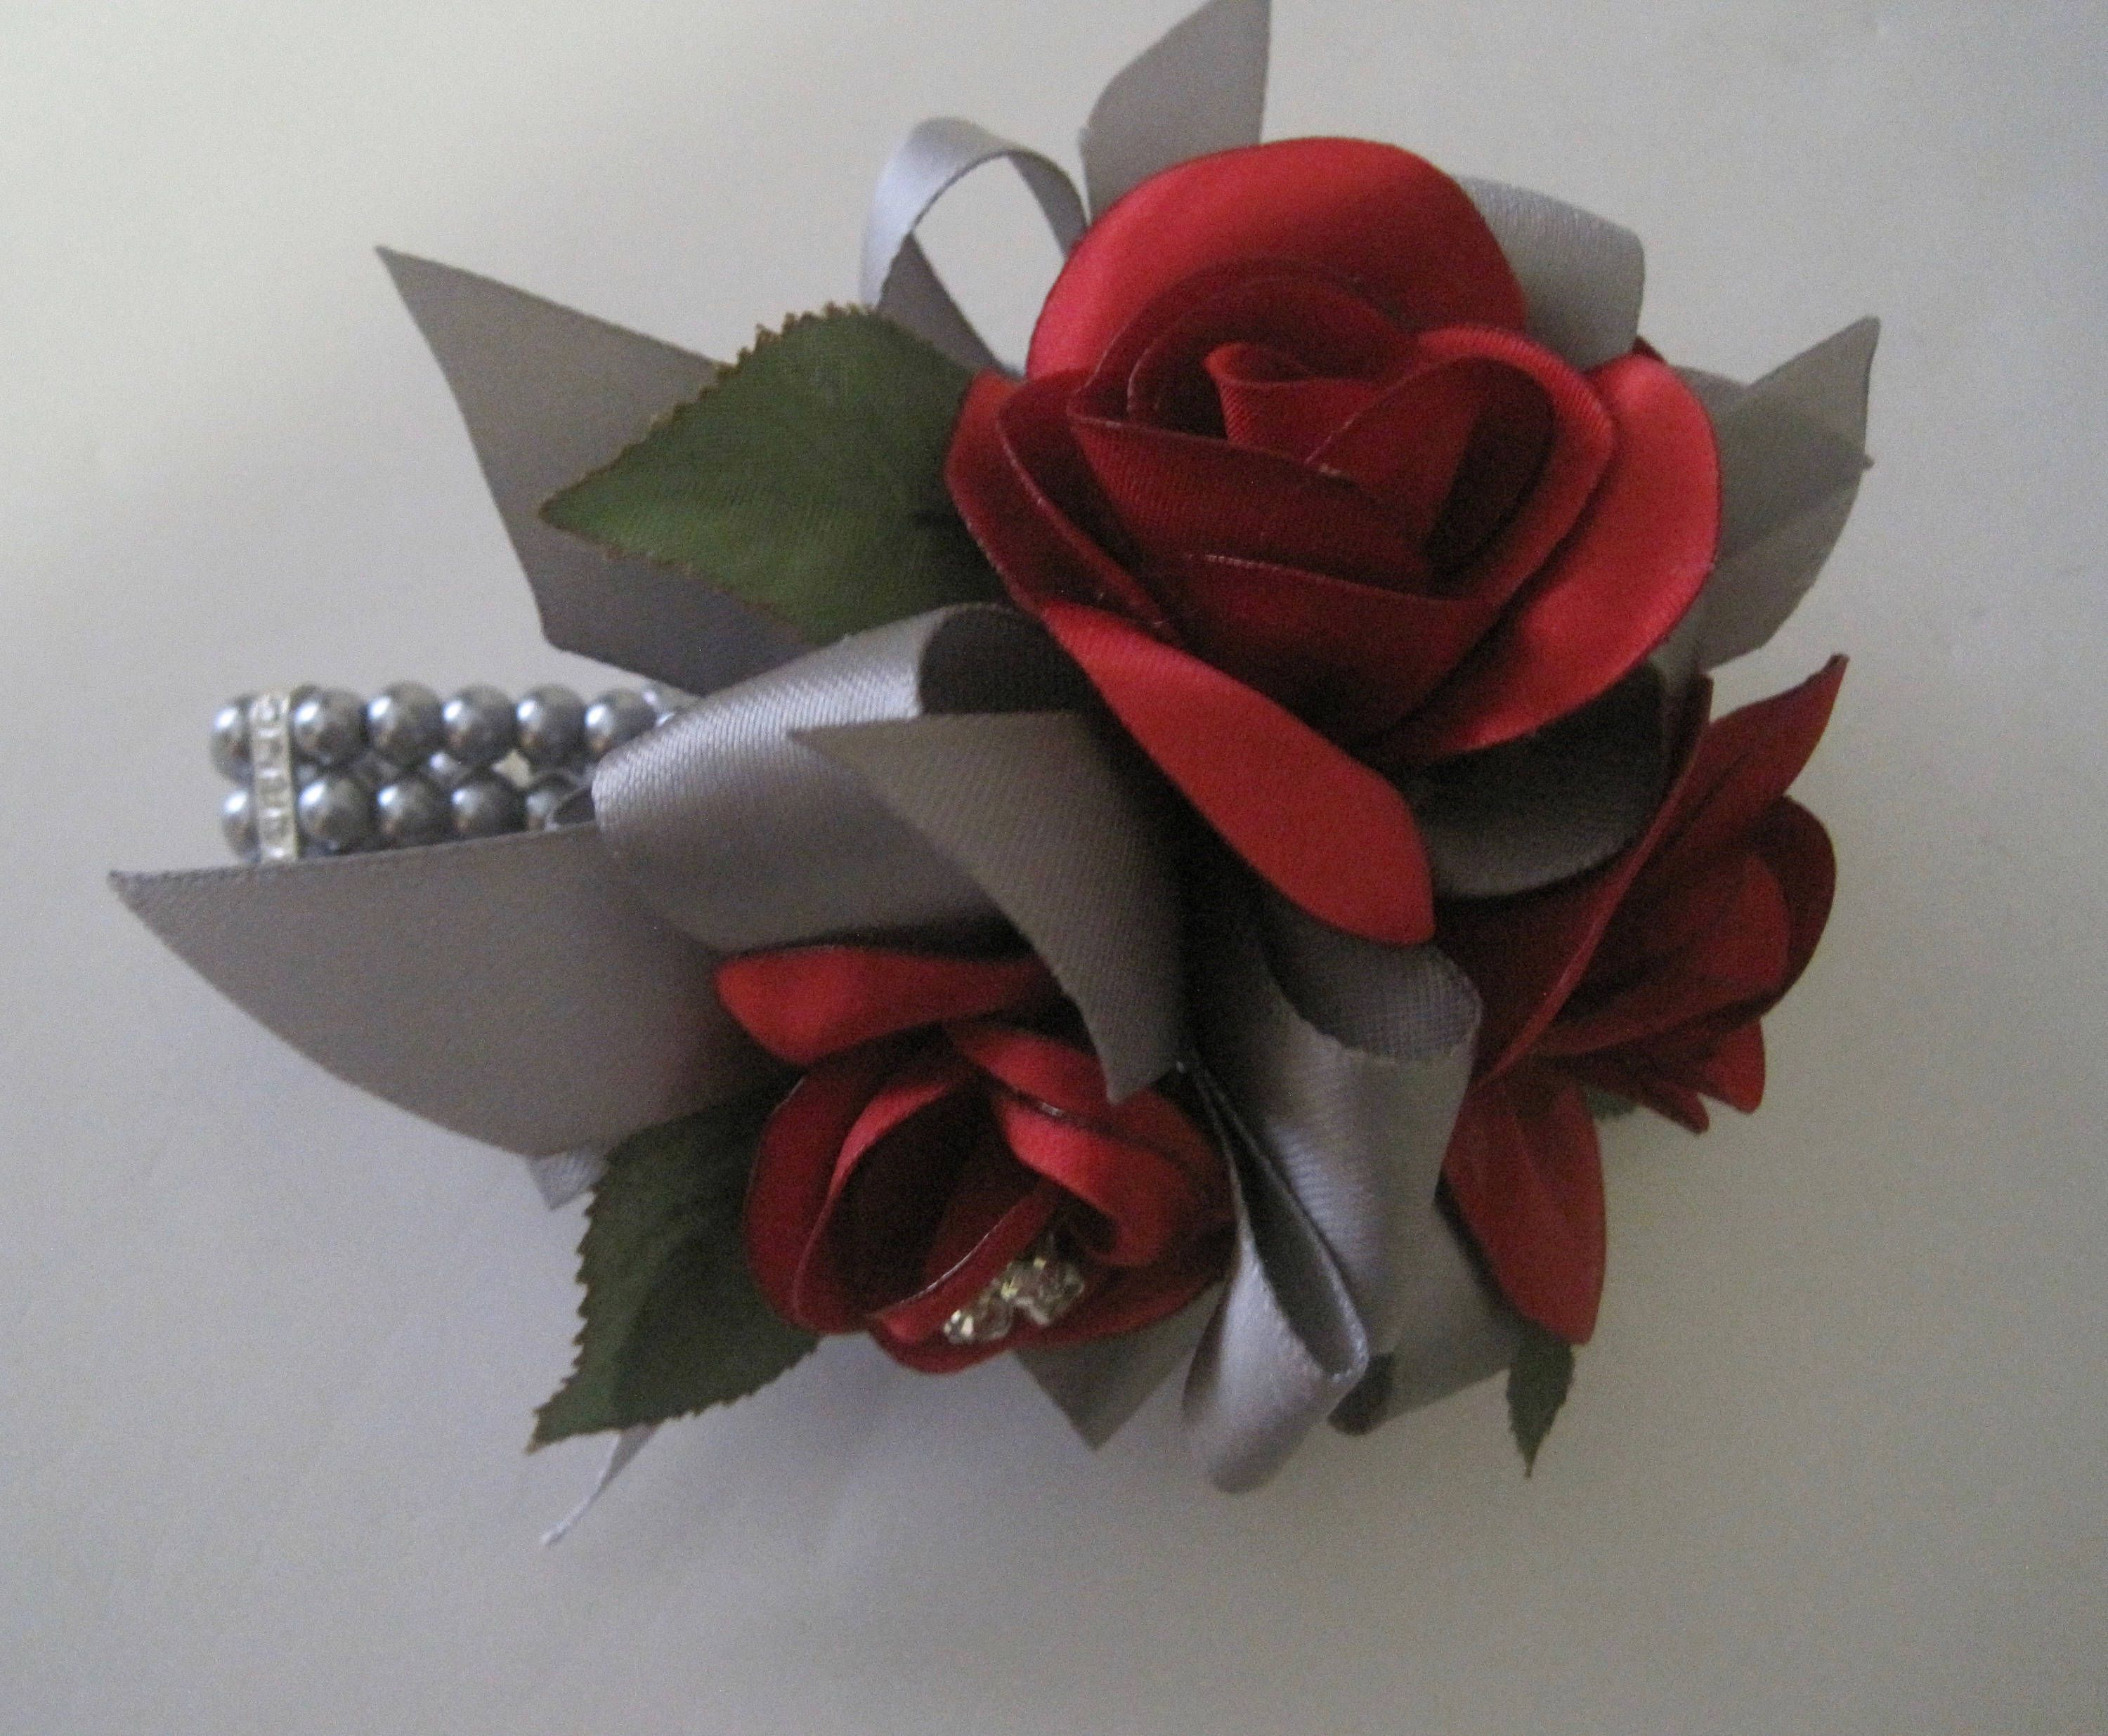 Silver corsage Bridesmaids corsage Flowers corsage Wrist corsage BurgundyGray corsage Wedding roses corsage Corsage whith feathers